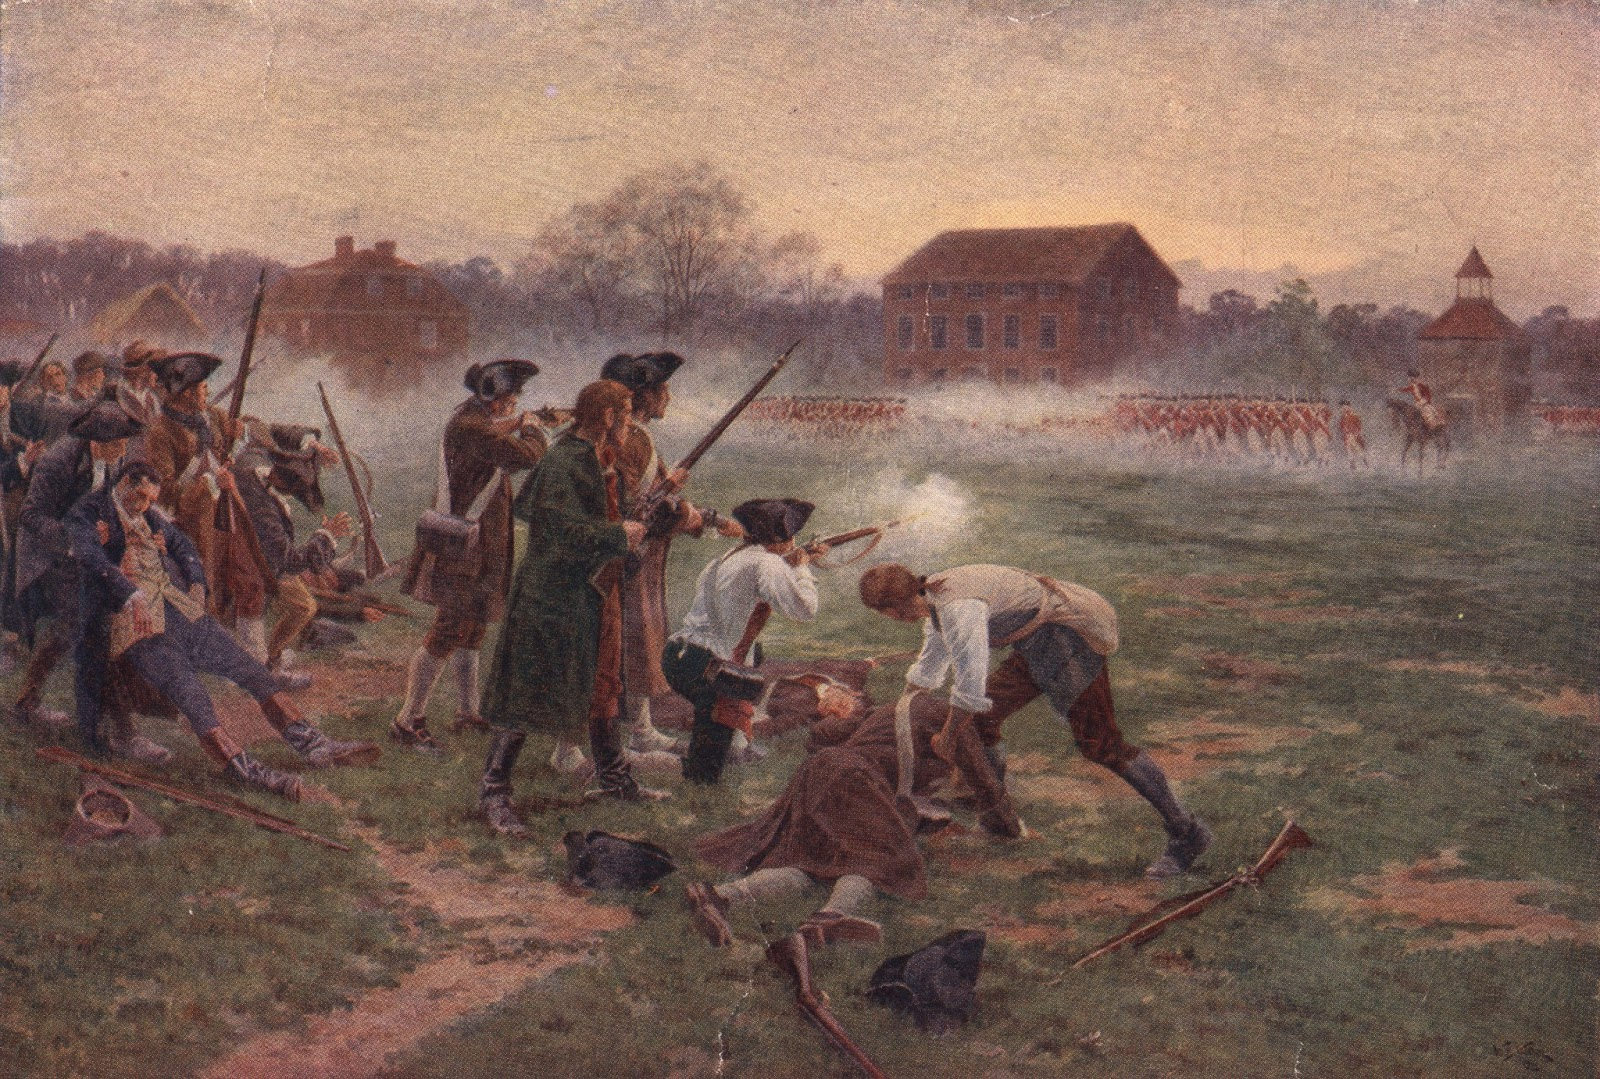 british arguments during the revolutionary war essay The violence took the form of the revolutionary war and congress became the leadership american revolution was the first anti-colonial, democratic revolution in history americans insisted on representation and when the british denied it, they fought their colonizers.